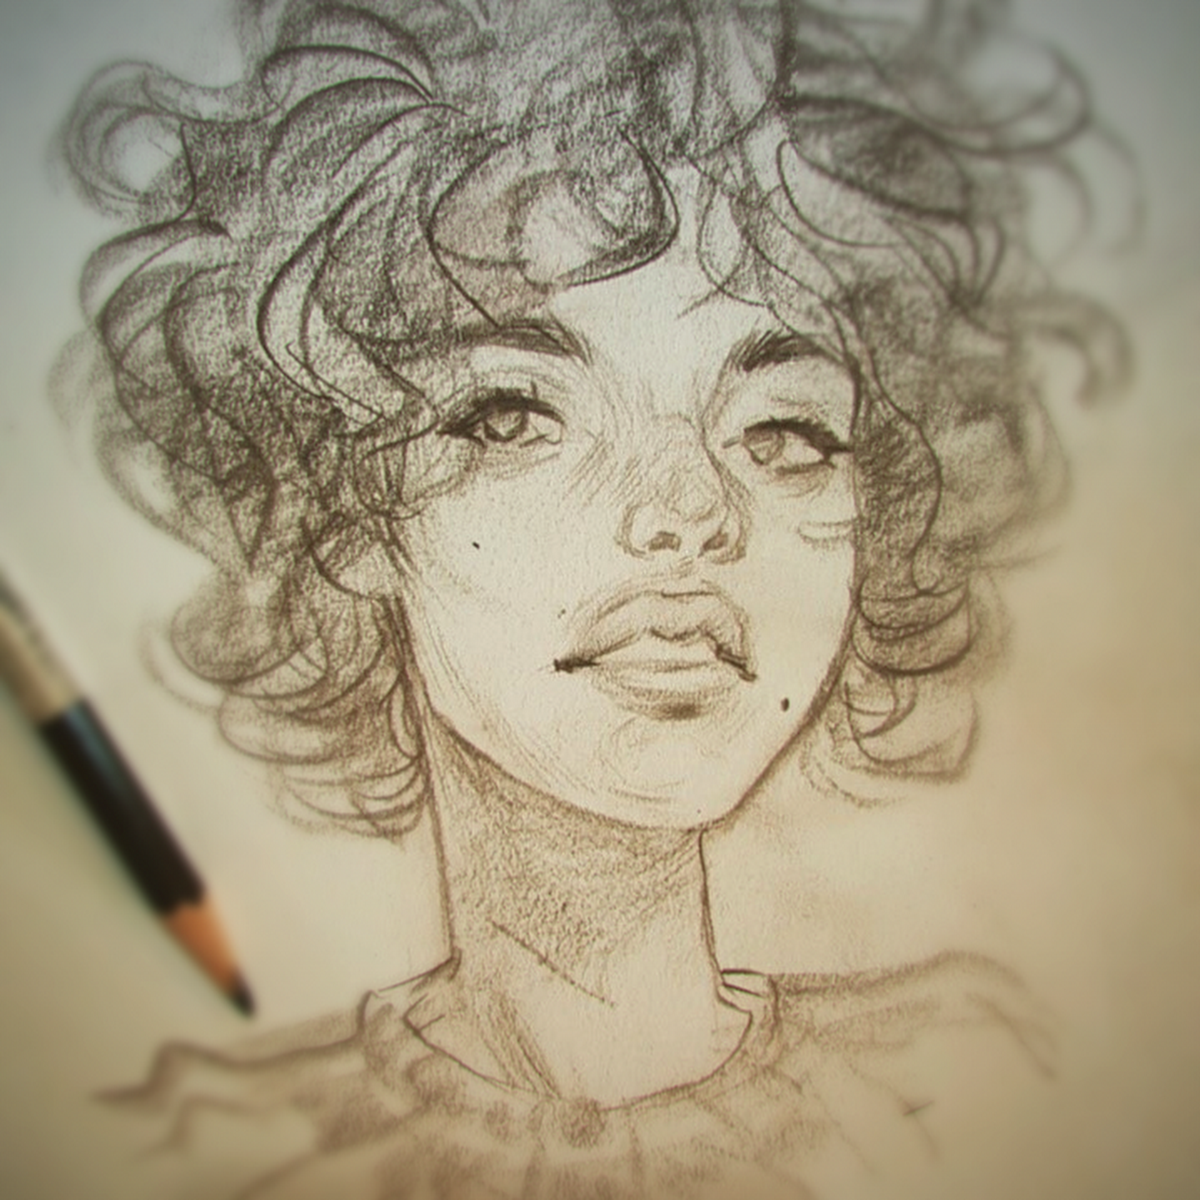 Short Messy Hair Sketch Dook This Afternoon Curly Hair Drawing Drawings Portrait Sketches